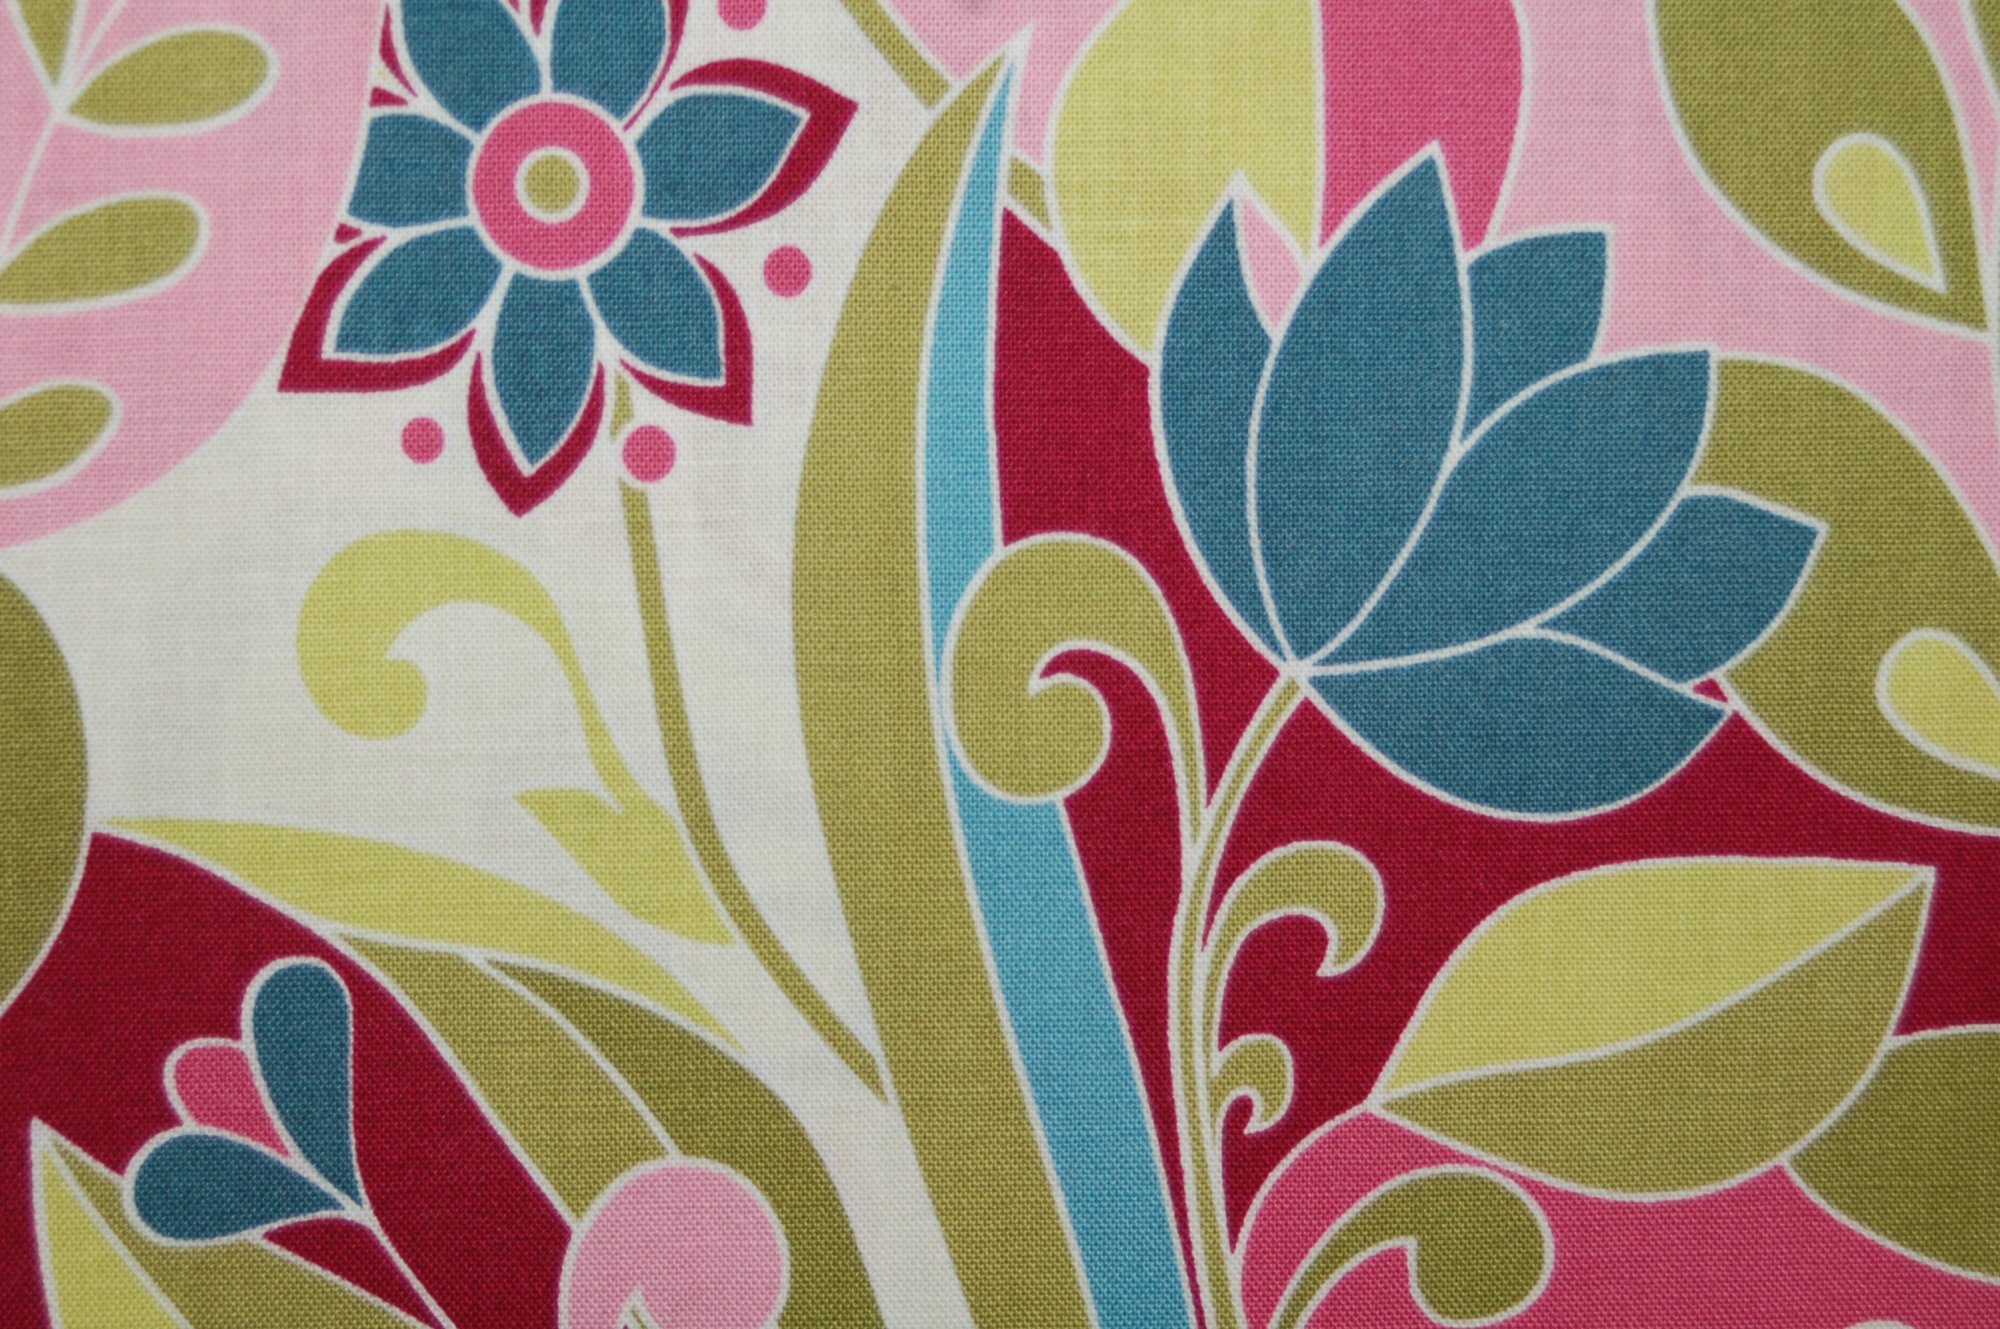 Boutanique - Large Flowers and Leaves from Lila Tueller for Riley Blake Designs